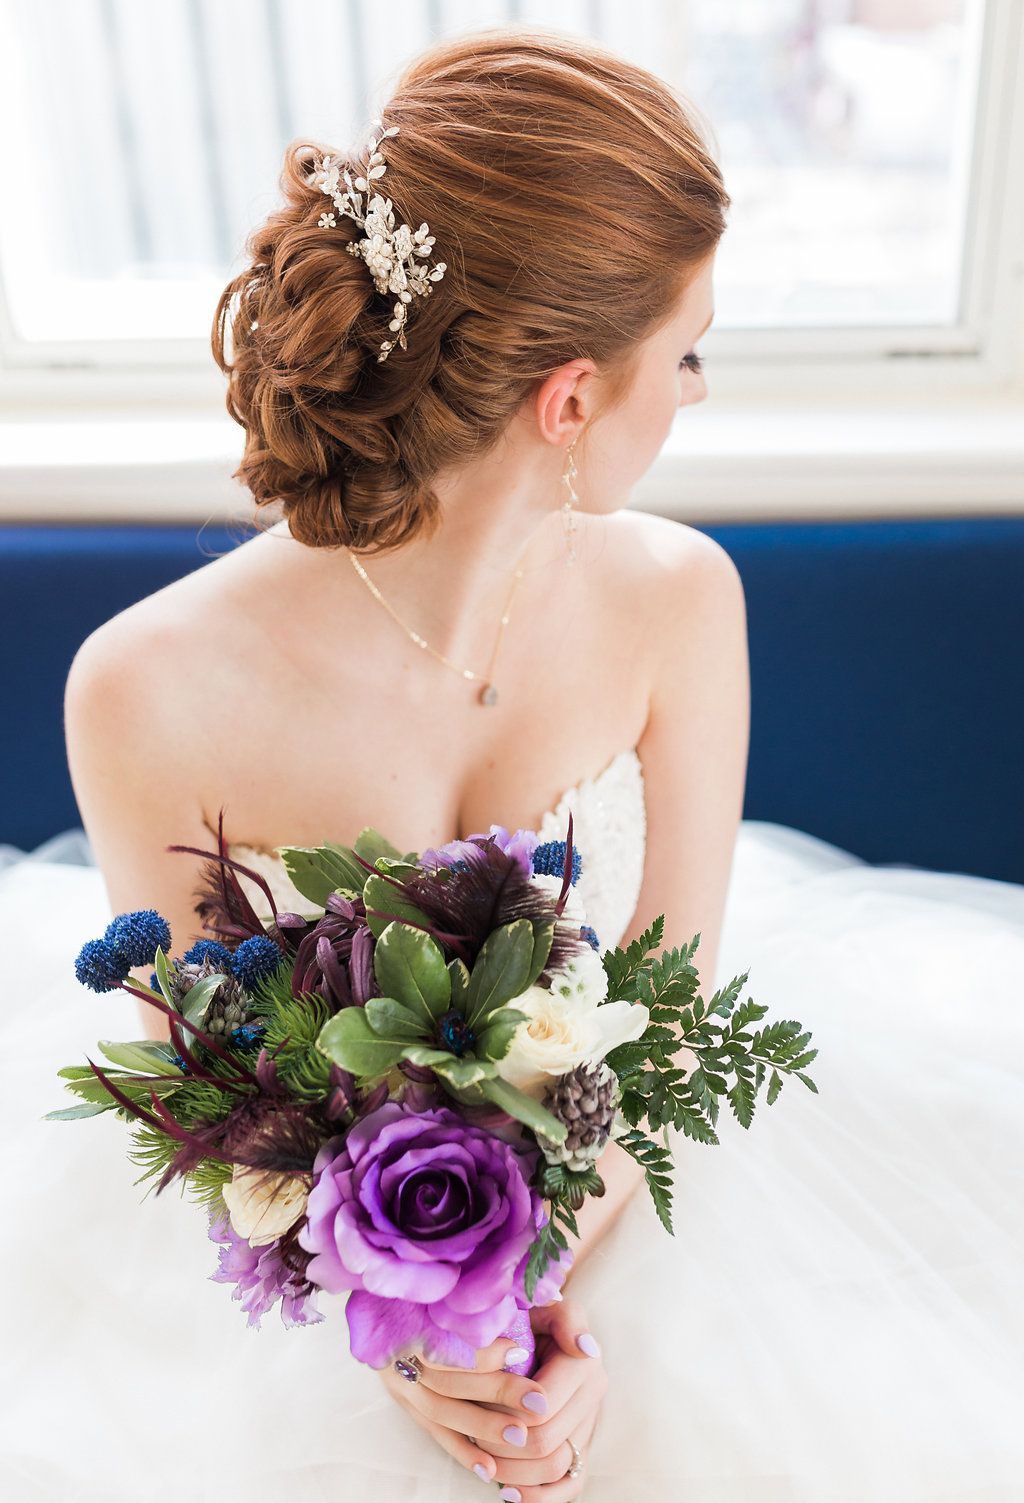 Ultra Violet + Opposites Attract Inspiration Shoot (With